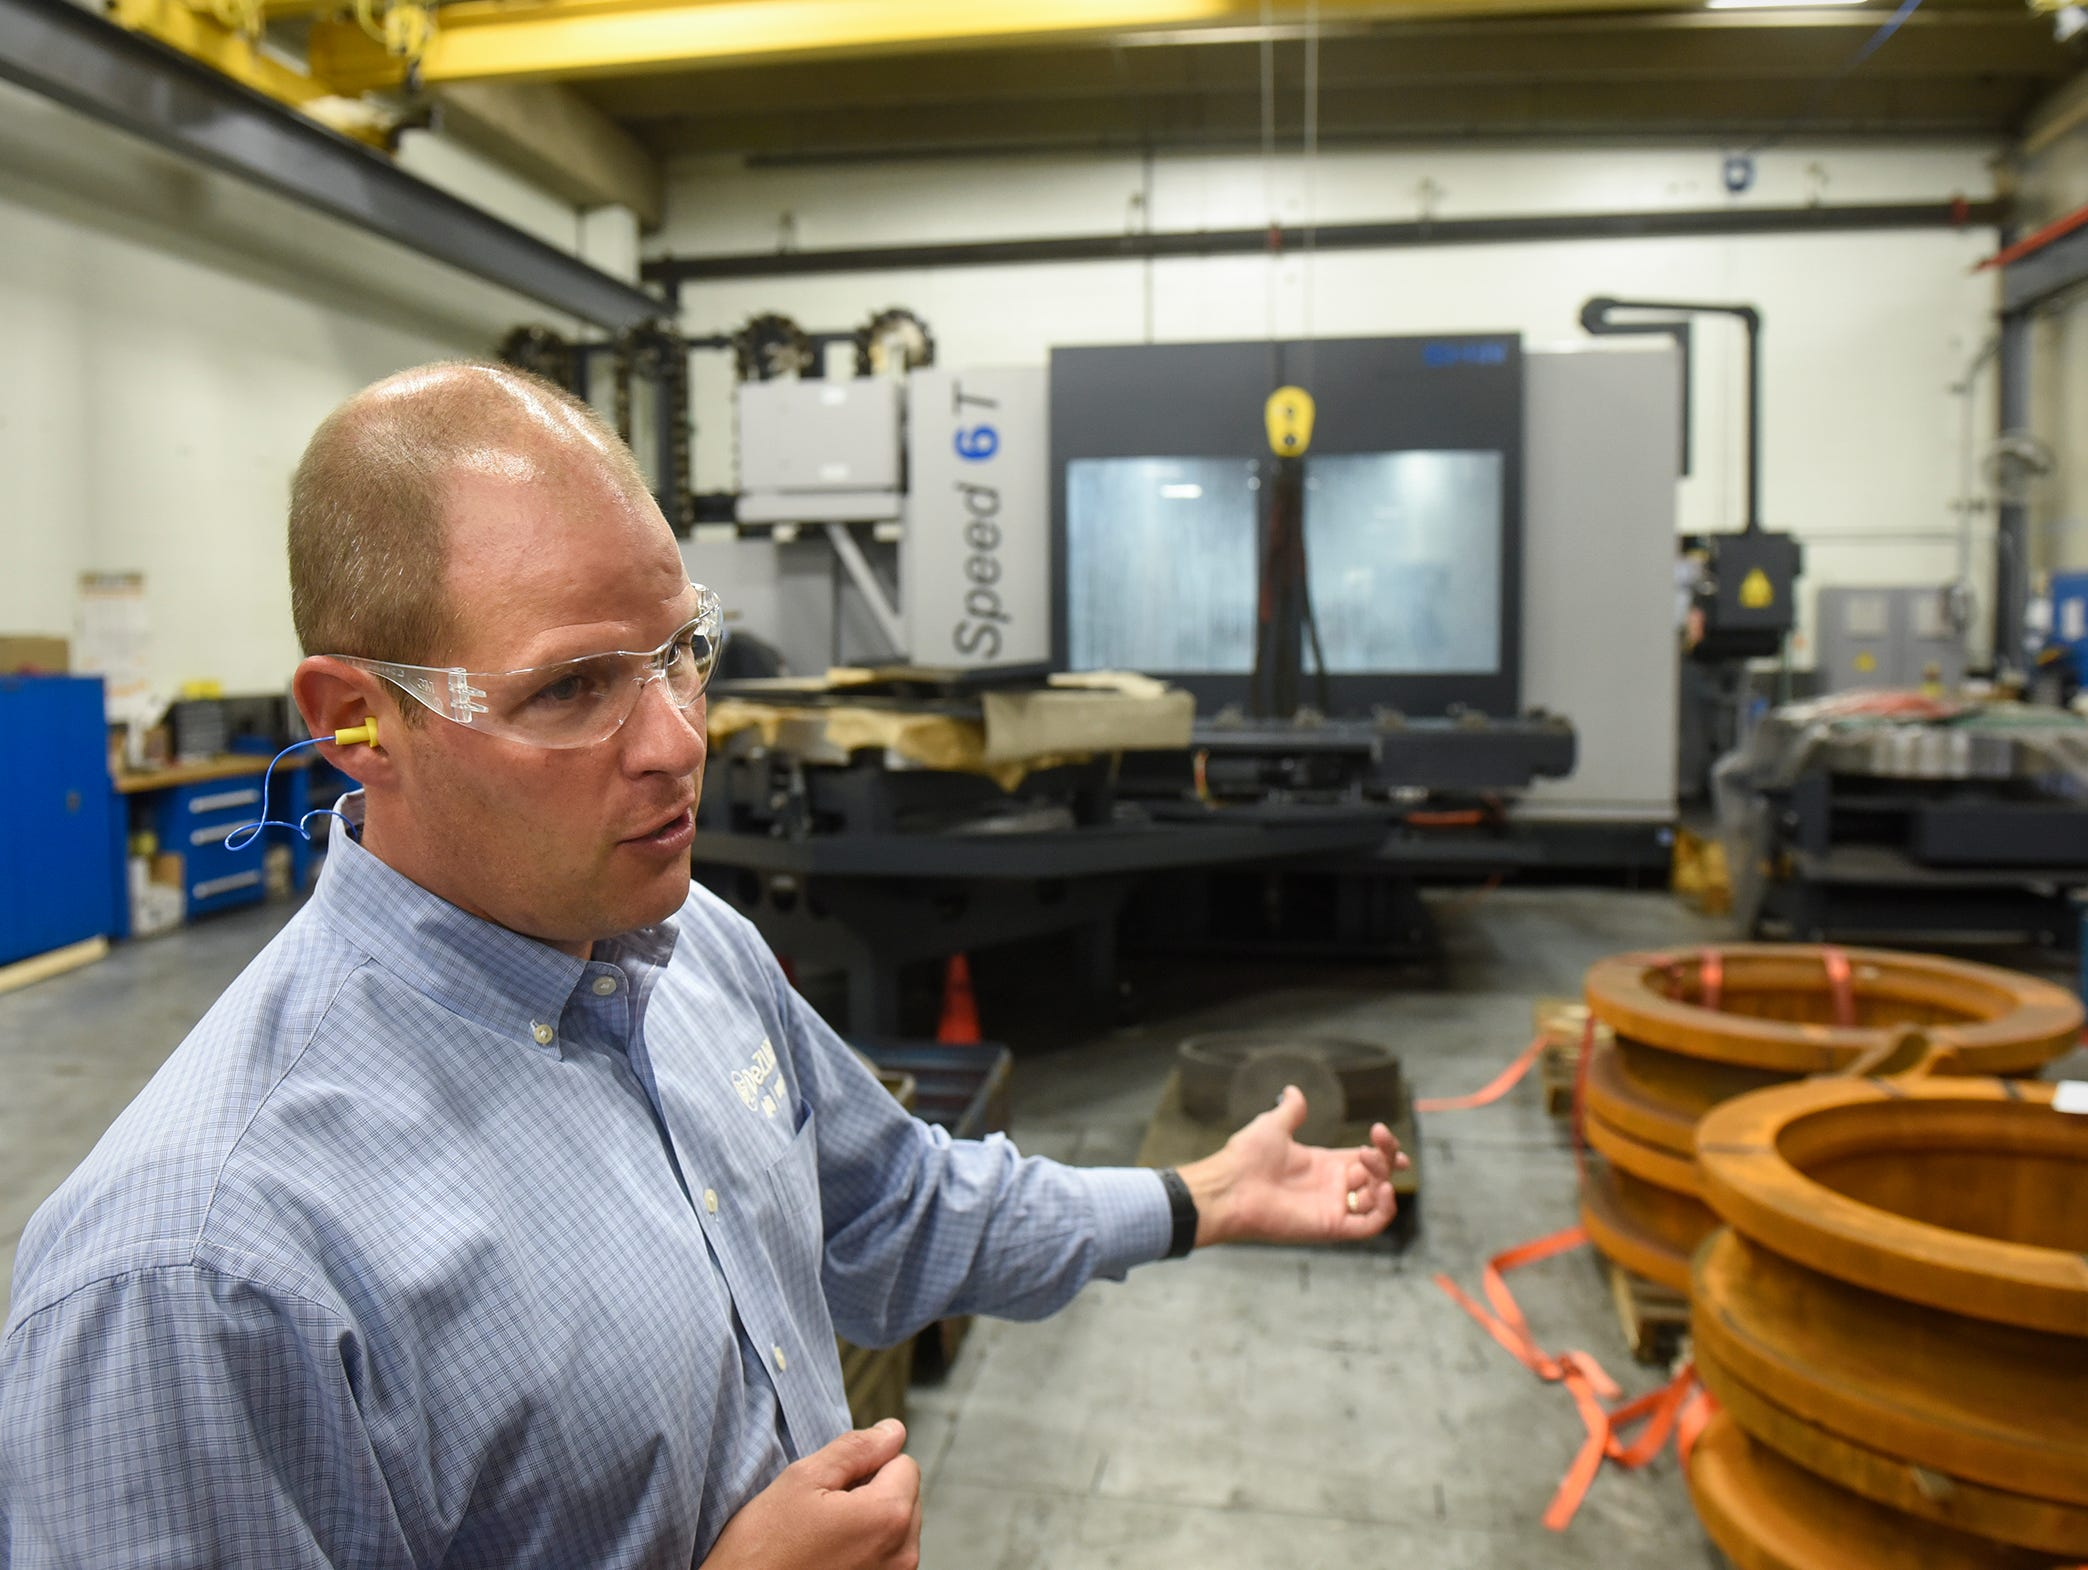 CEO and President Bryan Burns talks about a recently installed piece of milling equipment used in the manufacture of large valves Monday, Sept. 10, at the DeZURIK plant in Sartell. The facility will be holding an open house in celebration of the 90th anniversary Saturday, Sept. 22.